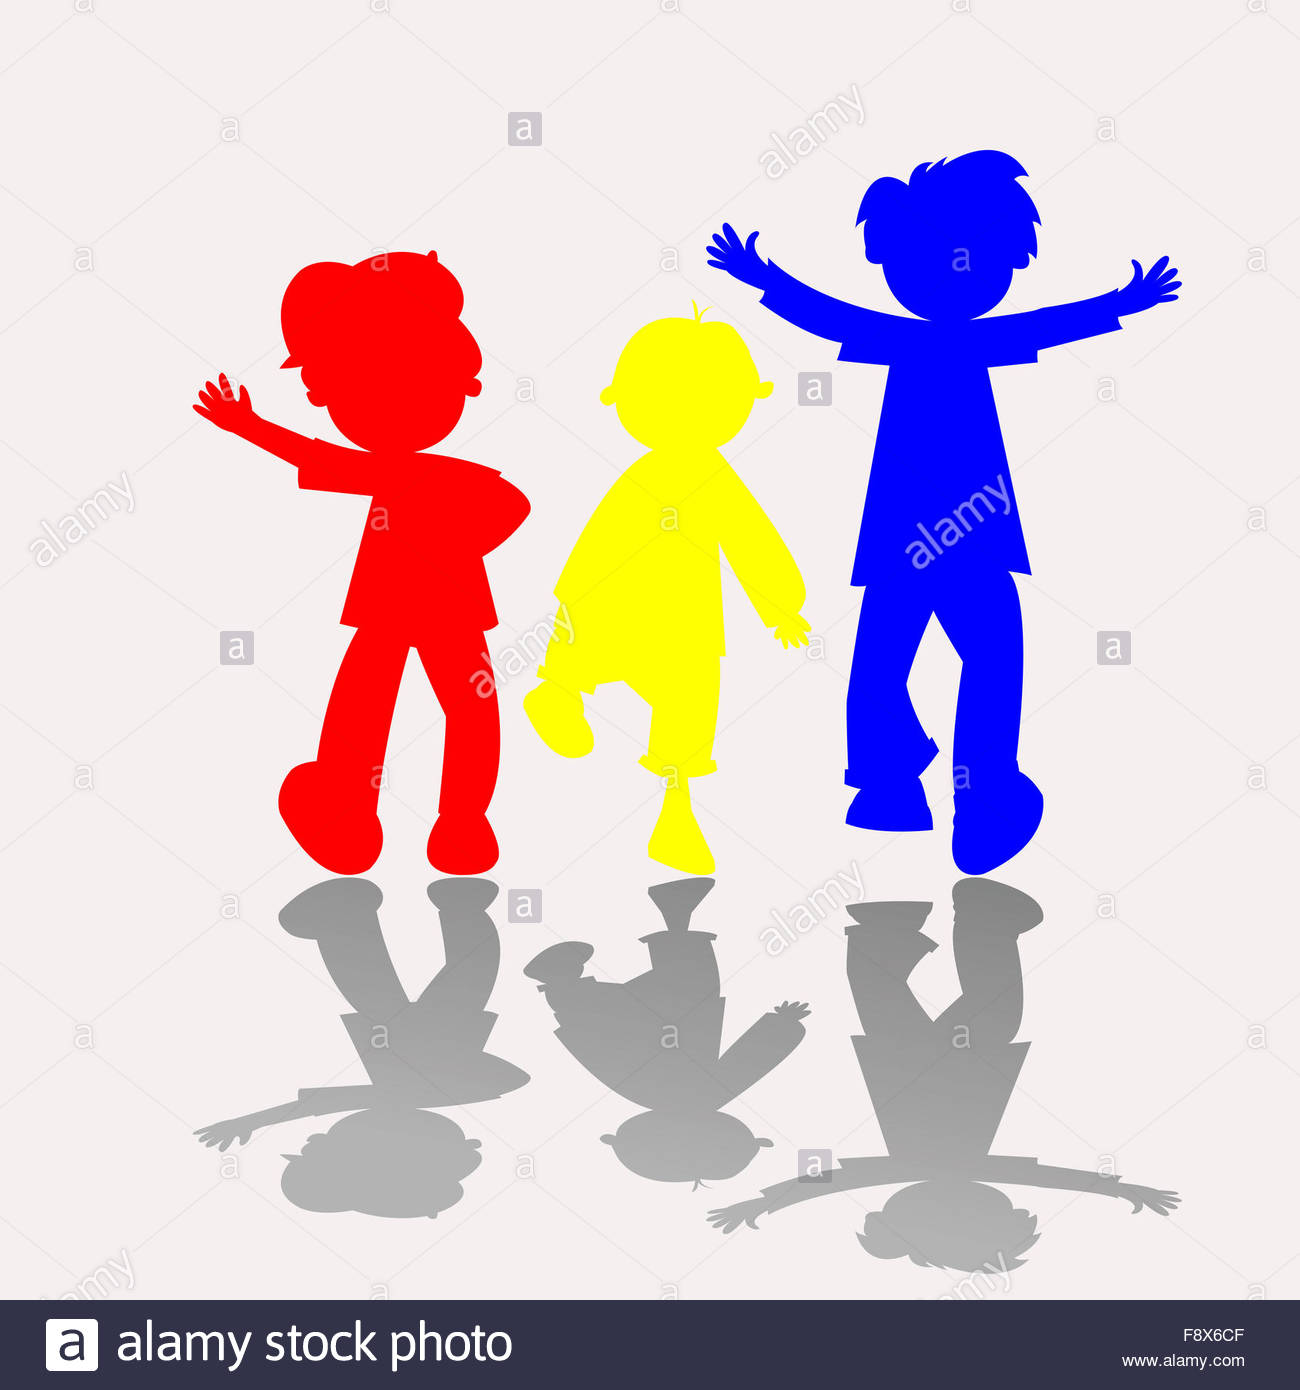 1300x1390 Colored Kids Silhouettes Stock Photo 91544895